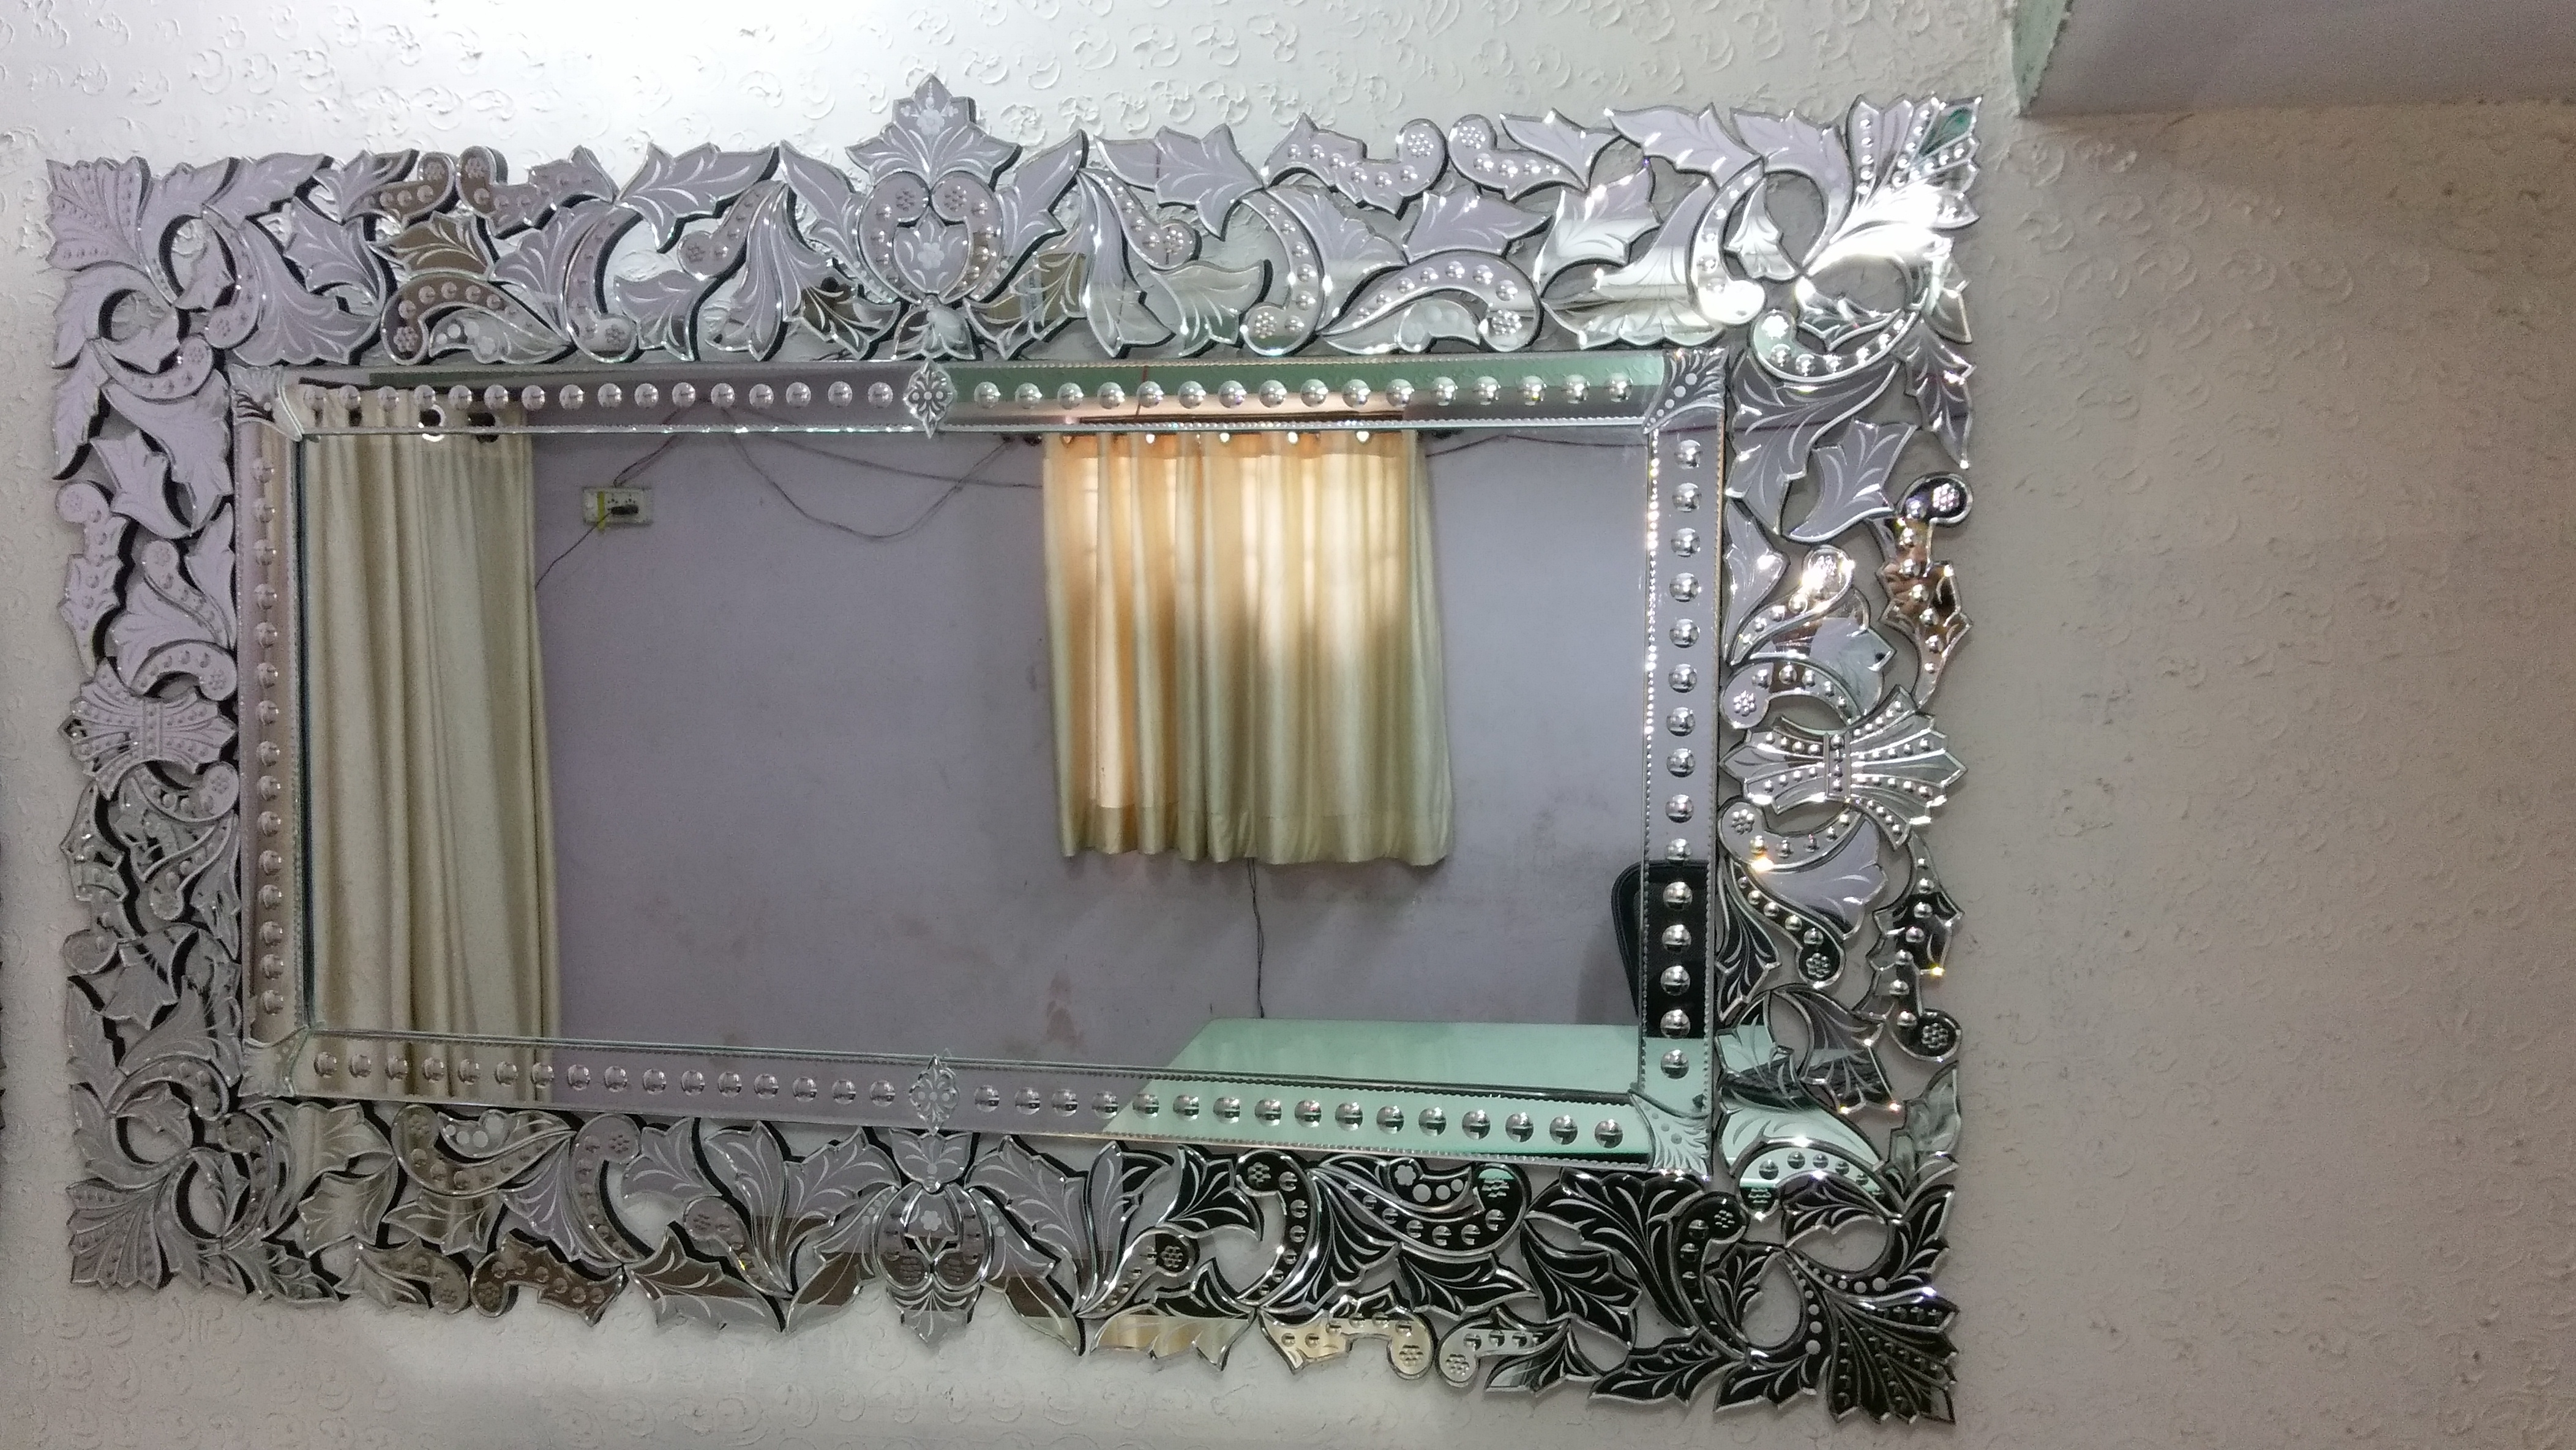 Large Venetian Mirrors Manufacturers Exporters Suppliers In India Within Venetian Mirror Large (Image 12 of 15)